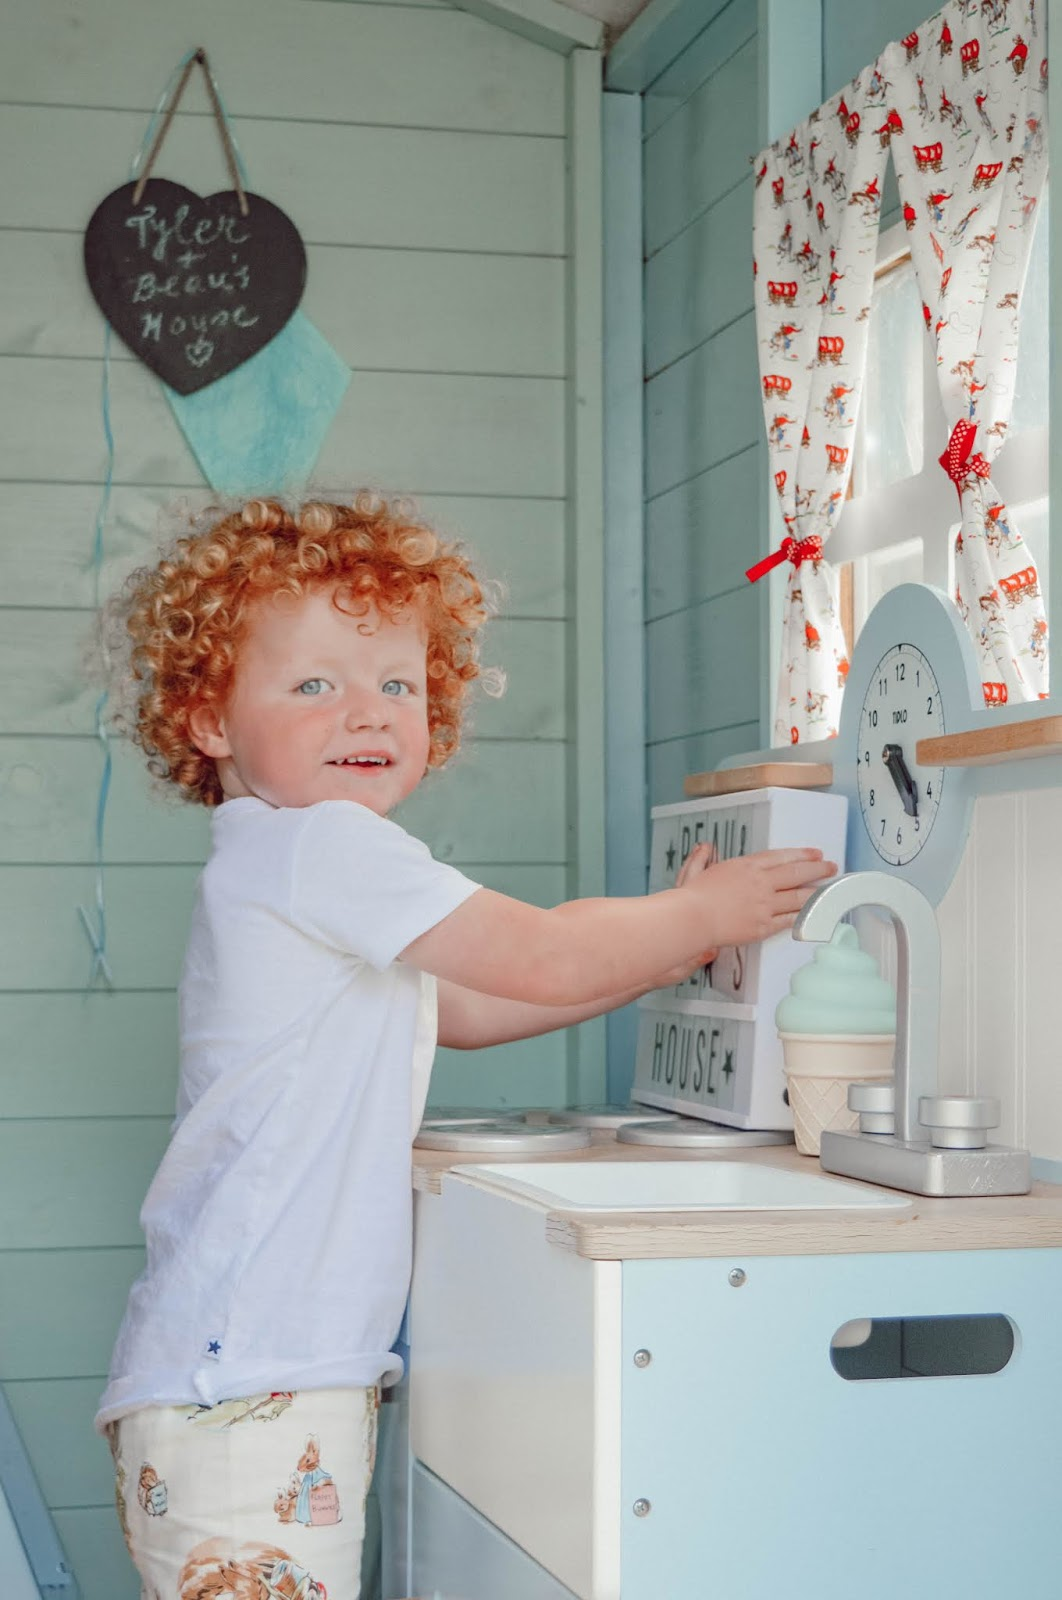 A child playing with a toy kitchen in a playhouse